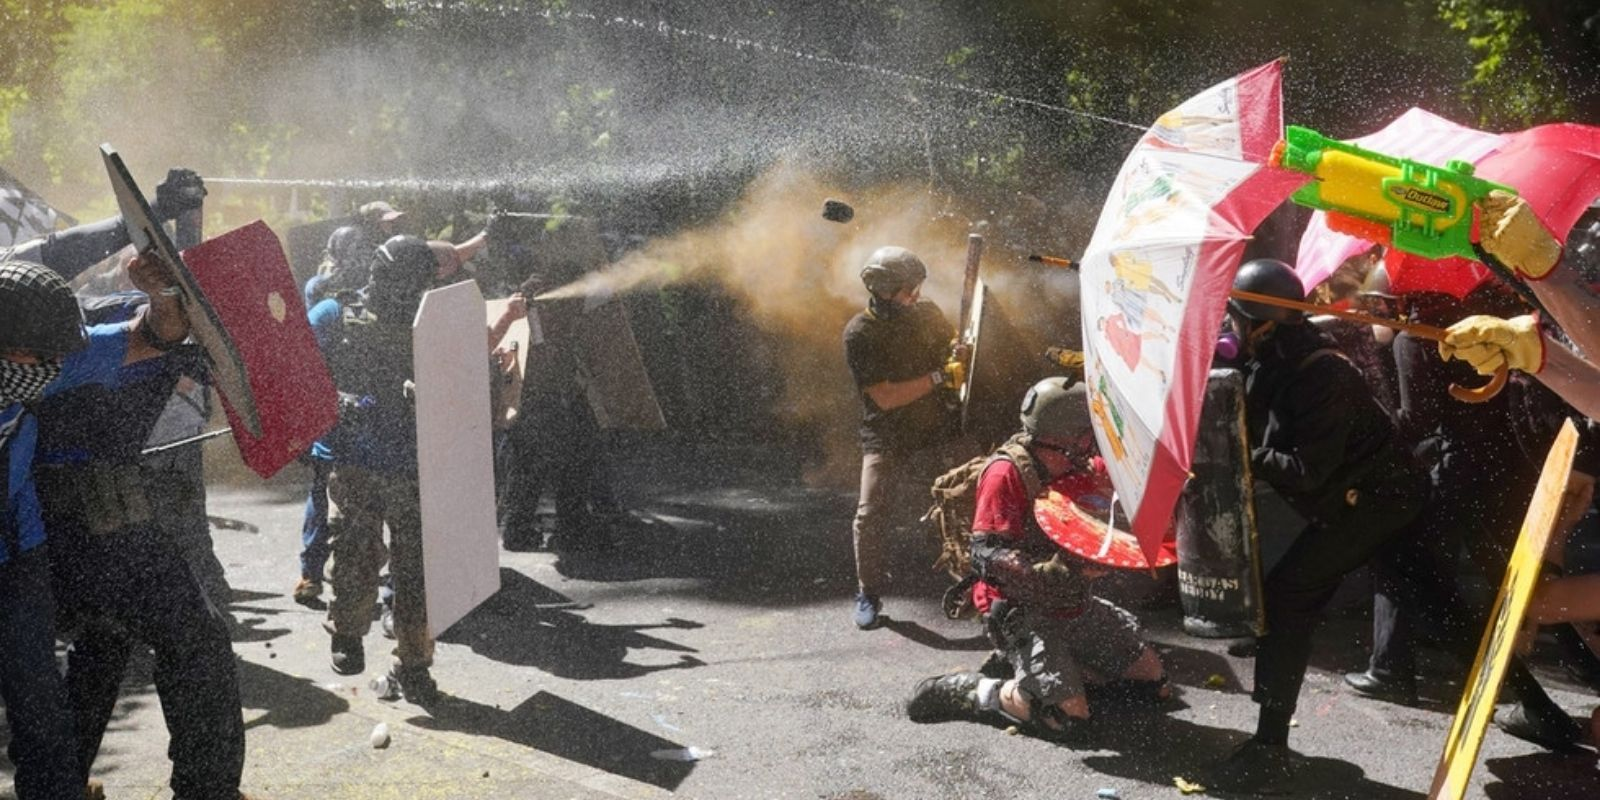 Portland police chief says officers won't intervene to protect residents from Antifa rioters